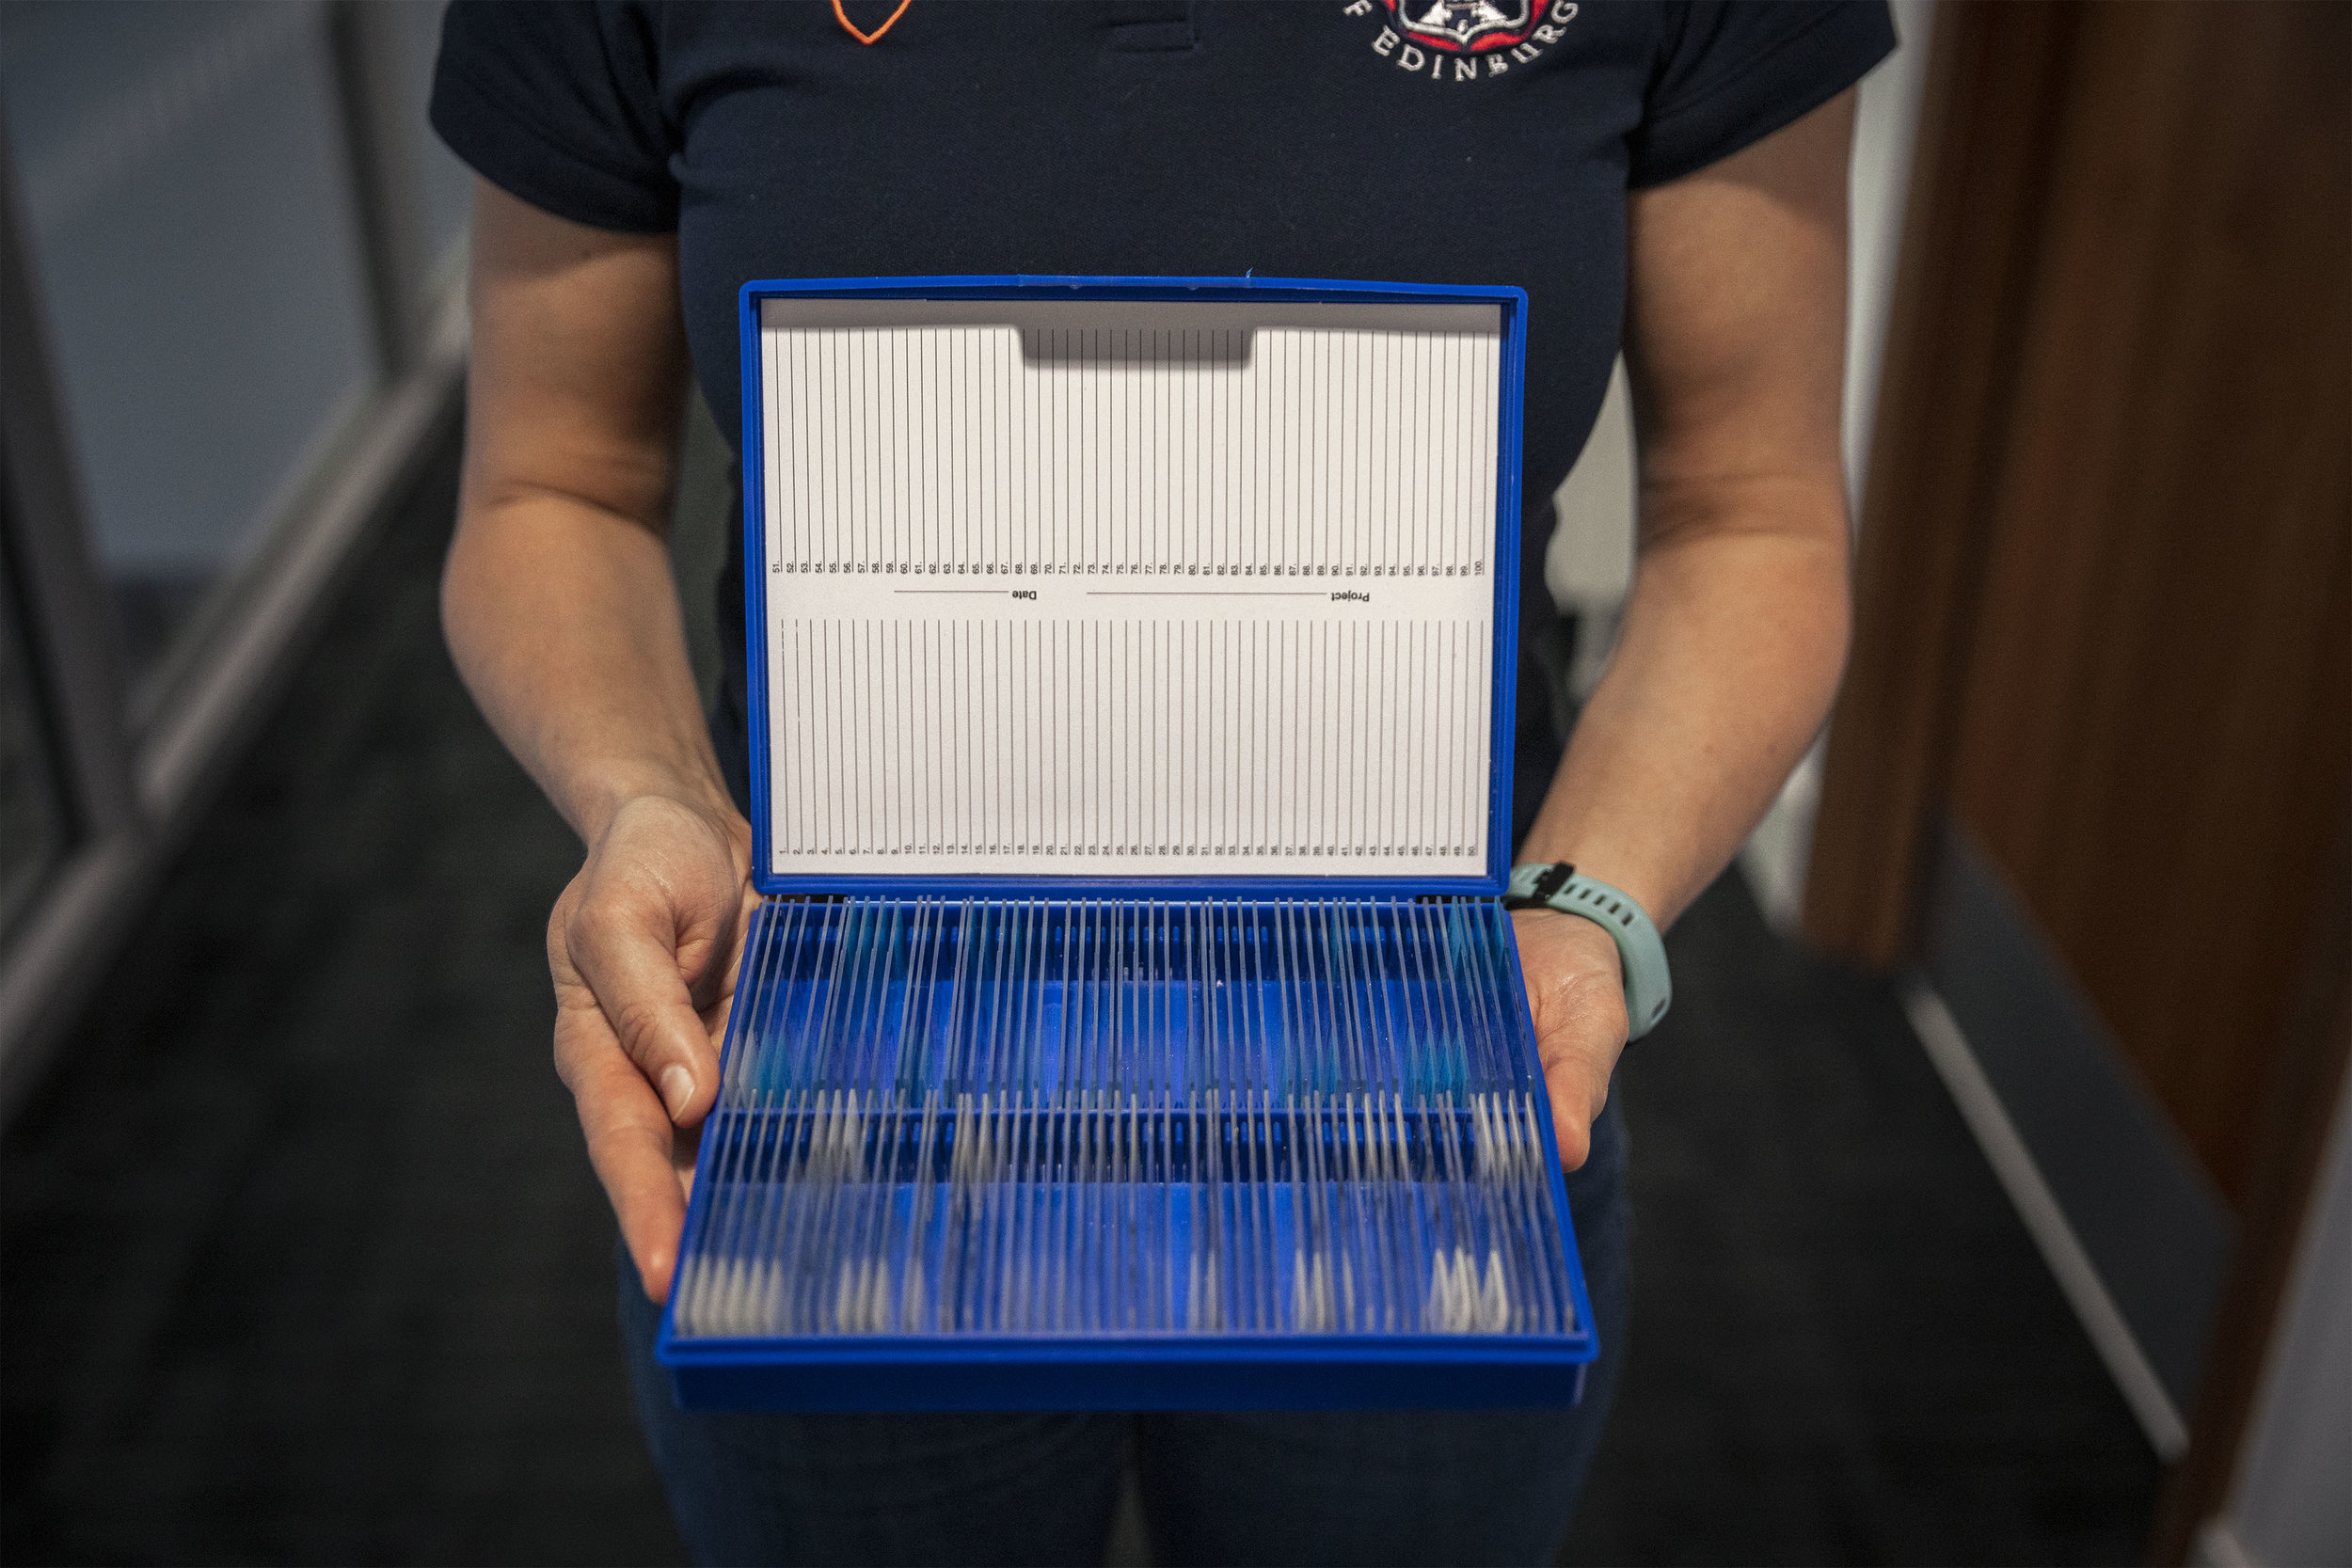 One of many boxes of slide samples